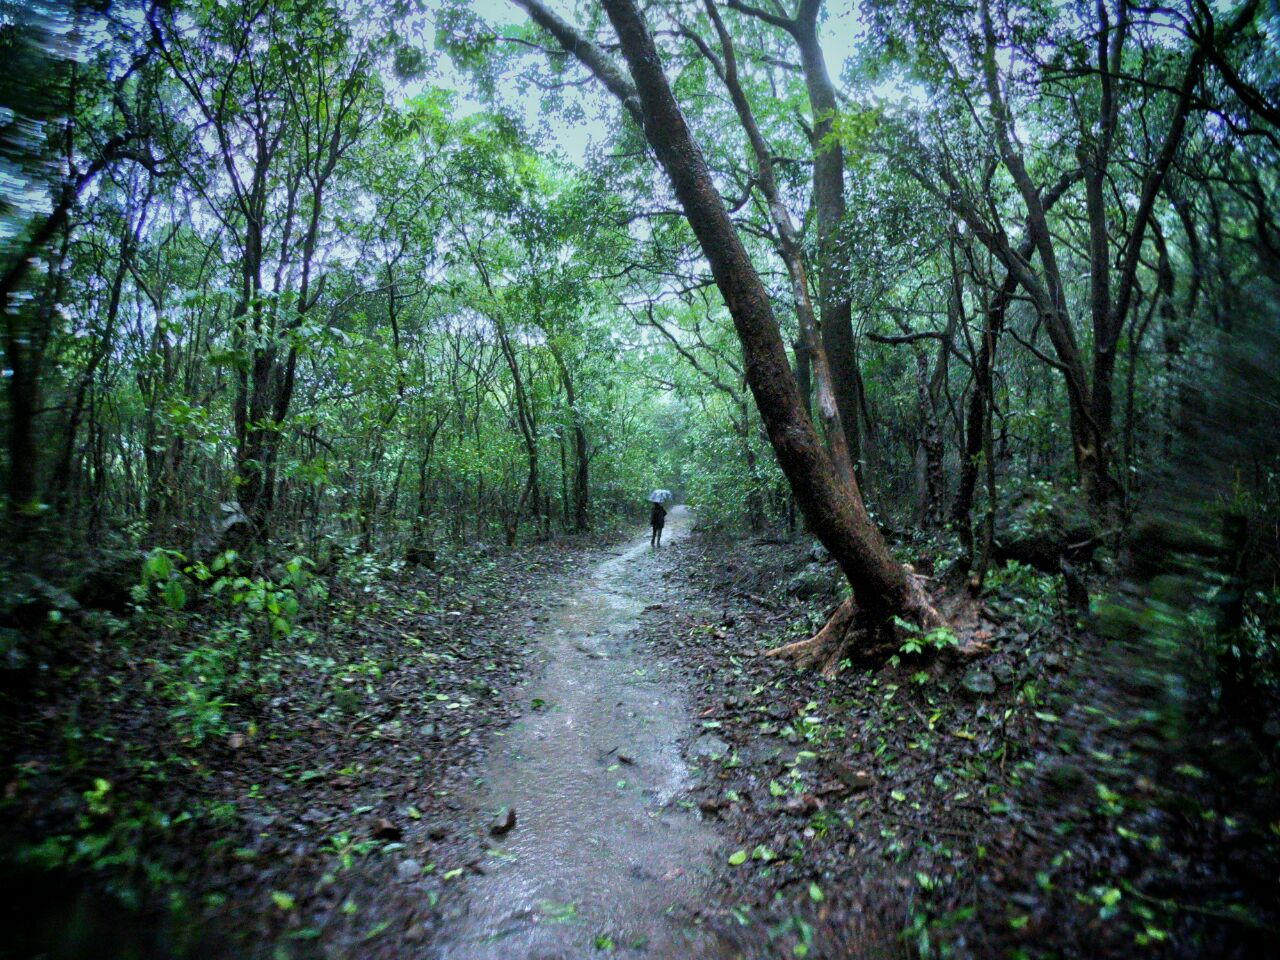 Bhimashankar-Bhorgiri-Jungle-Trail